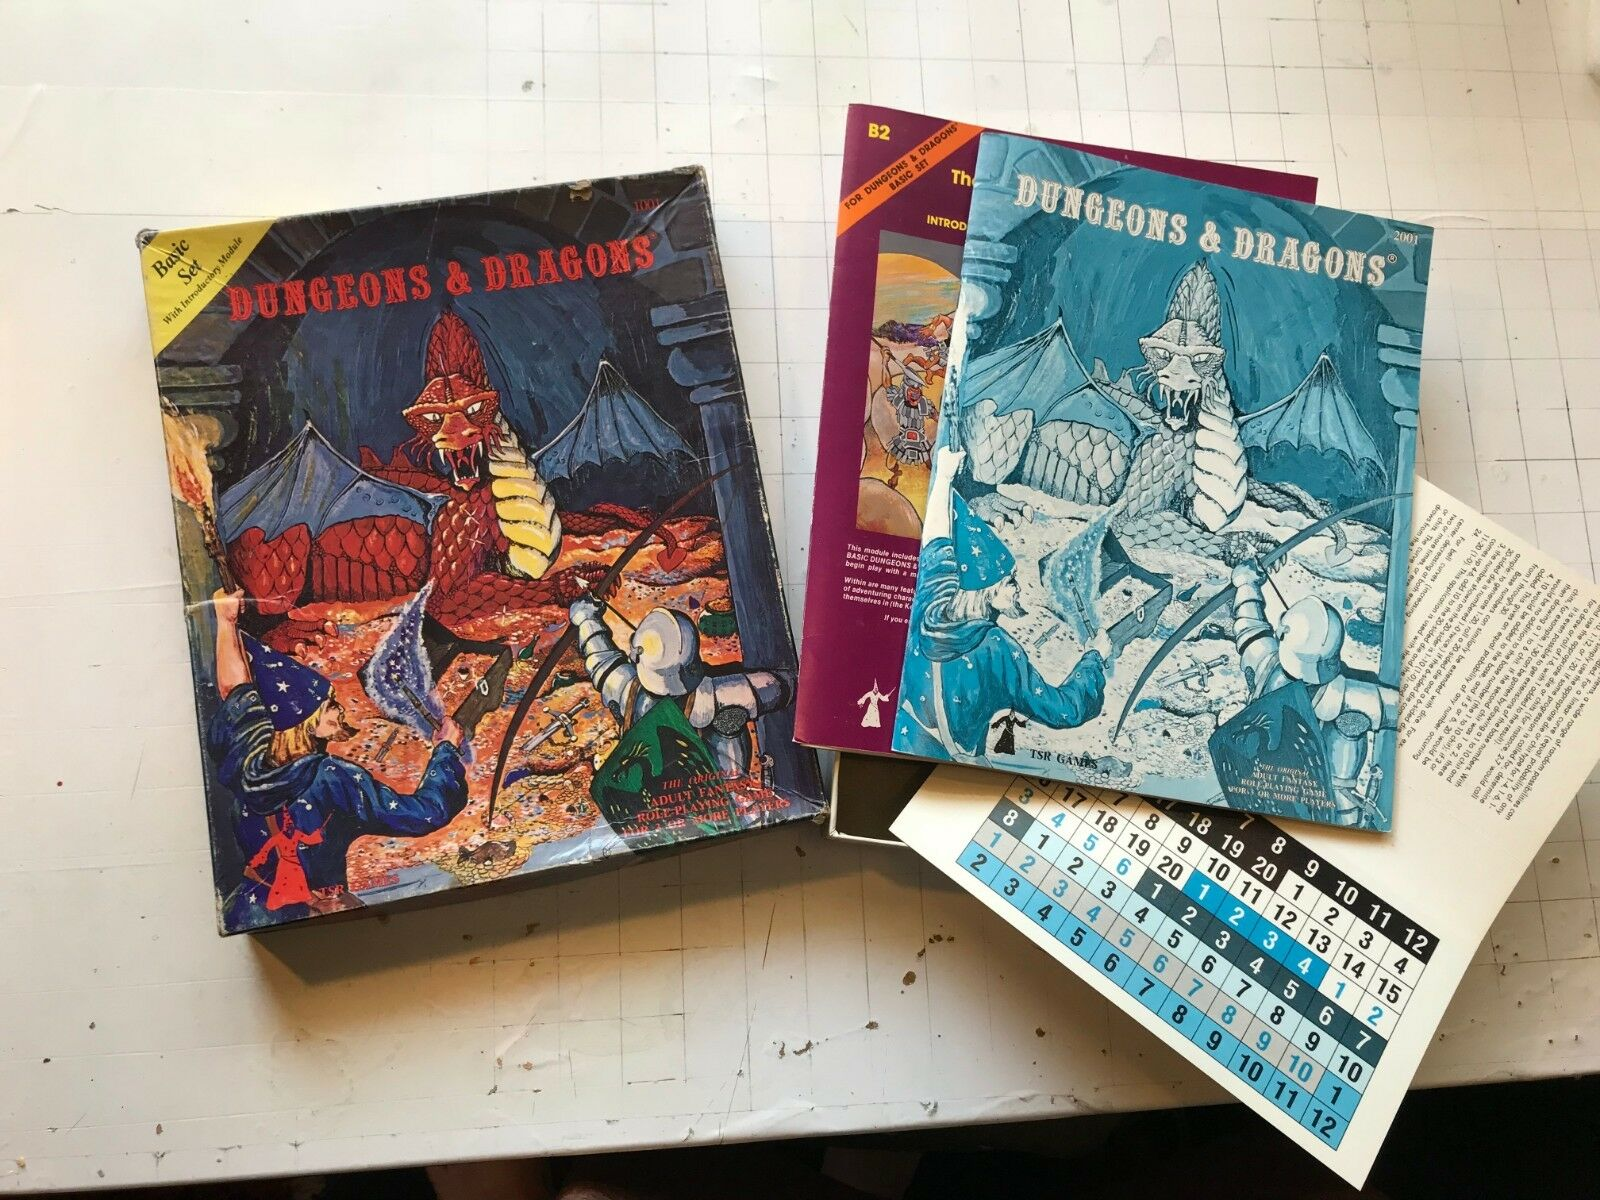 TSR D&D Dungeons and Dragons rpg box 1979 1001 basic set holmes gary gygax rare